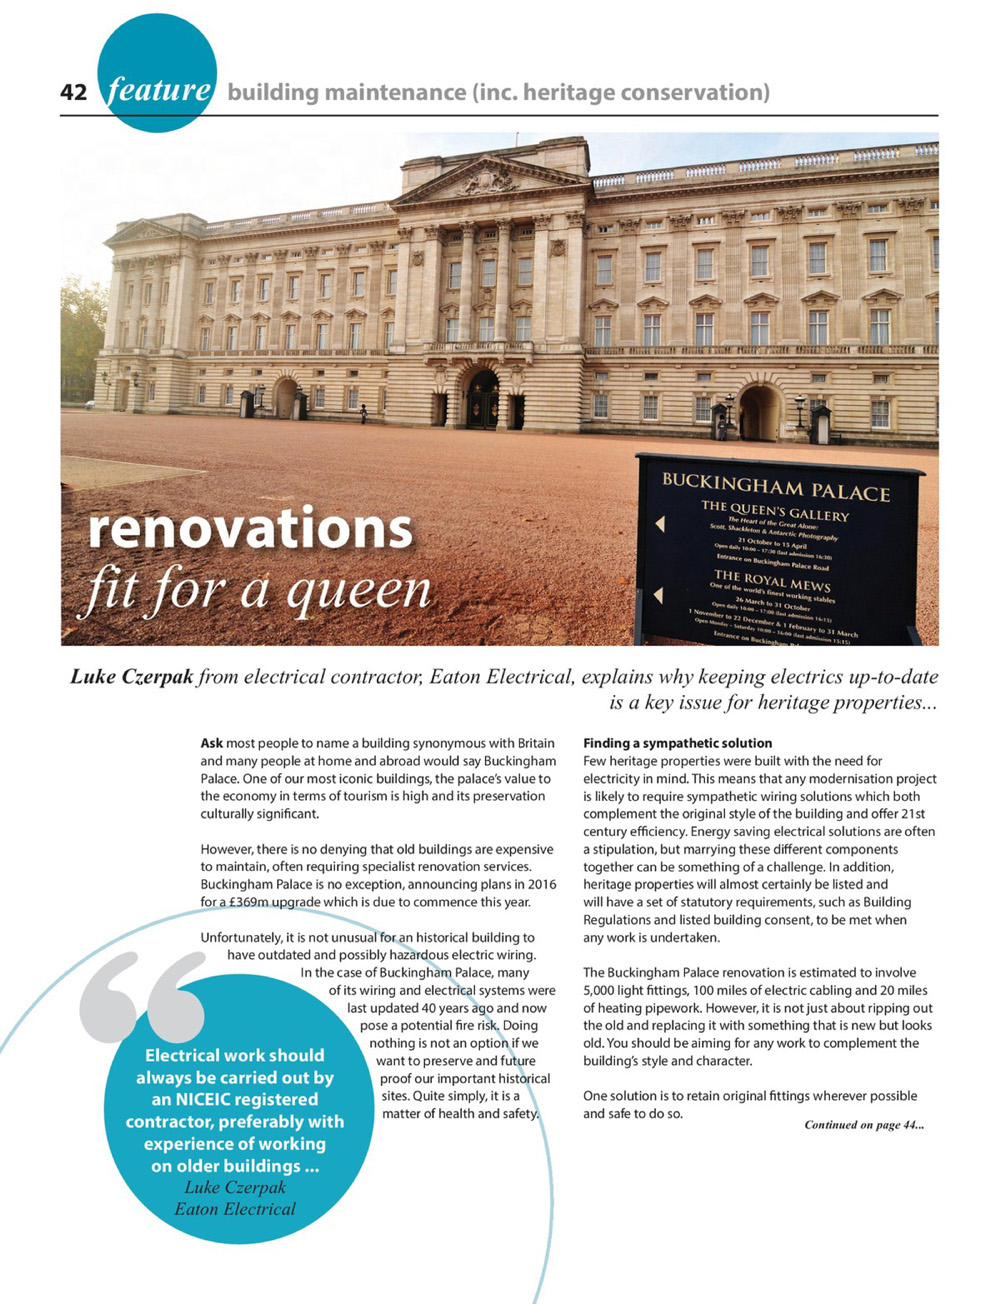 Article: Renovations fit for a queen - Eaton Electrical